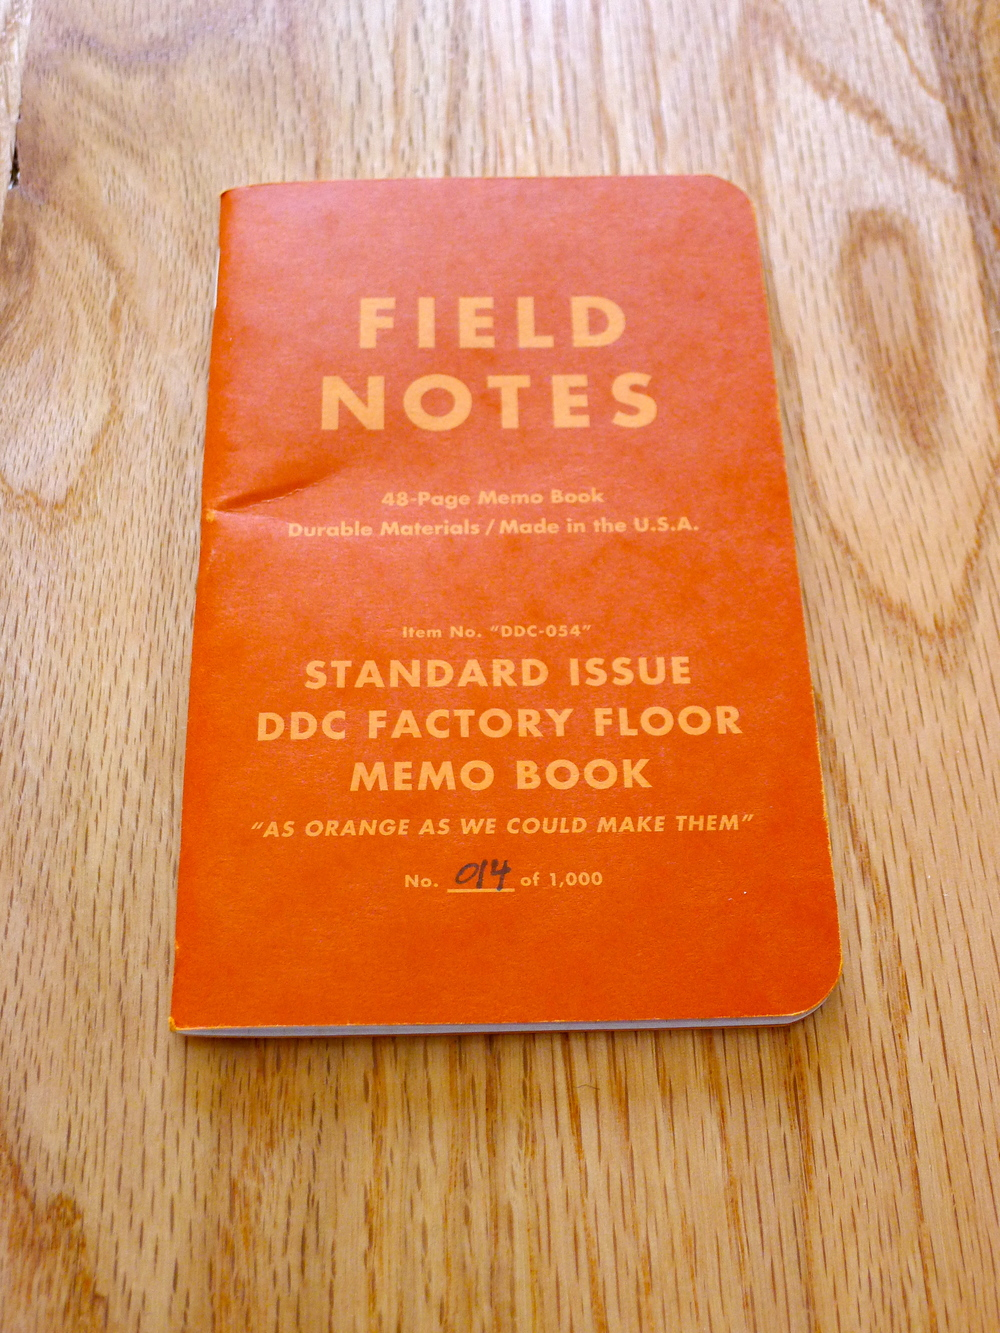 Field Notes DDC Factory Floor Special Edition